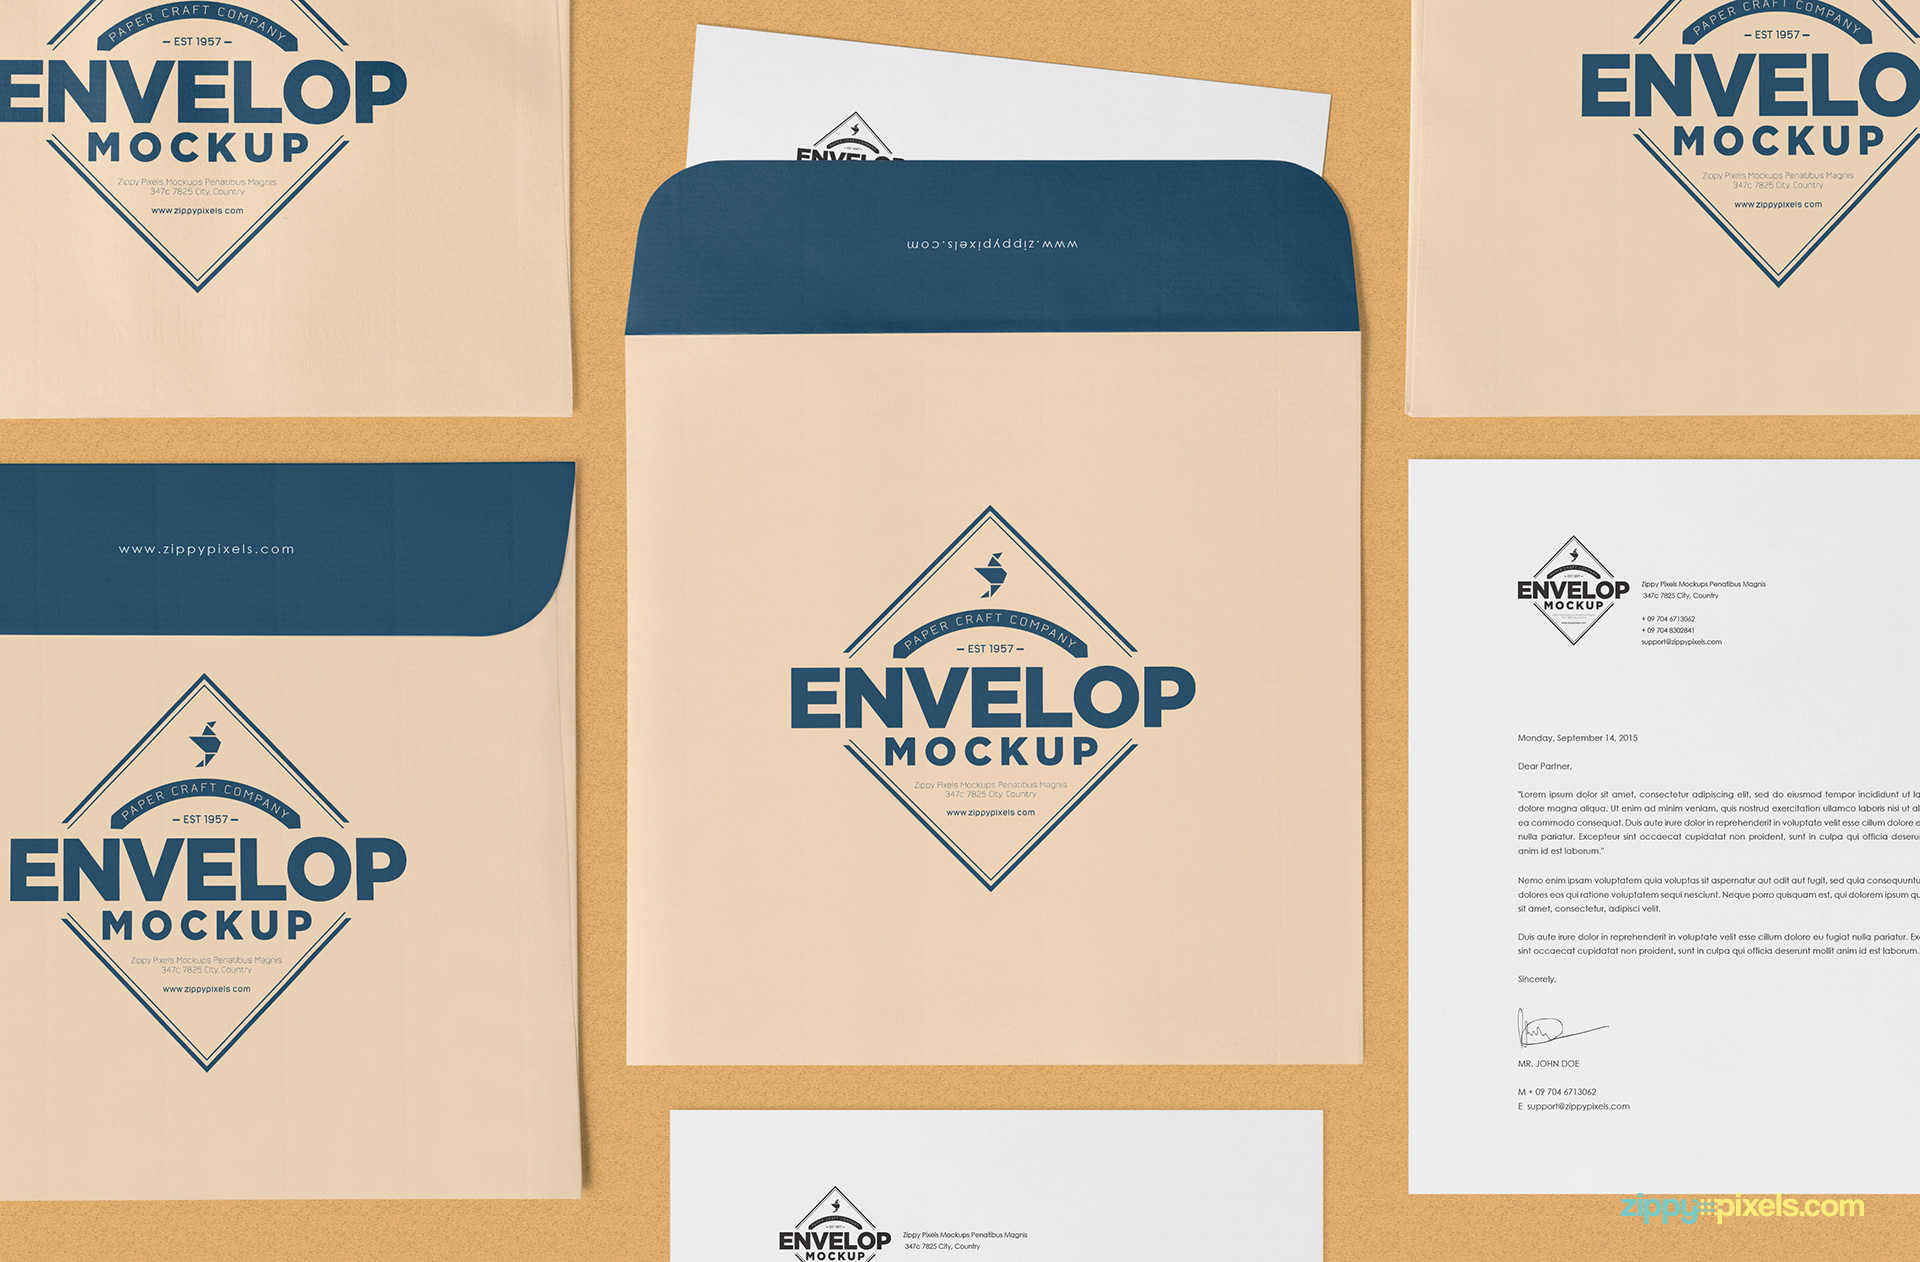 envelope-mockup-straight-tile-view